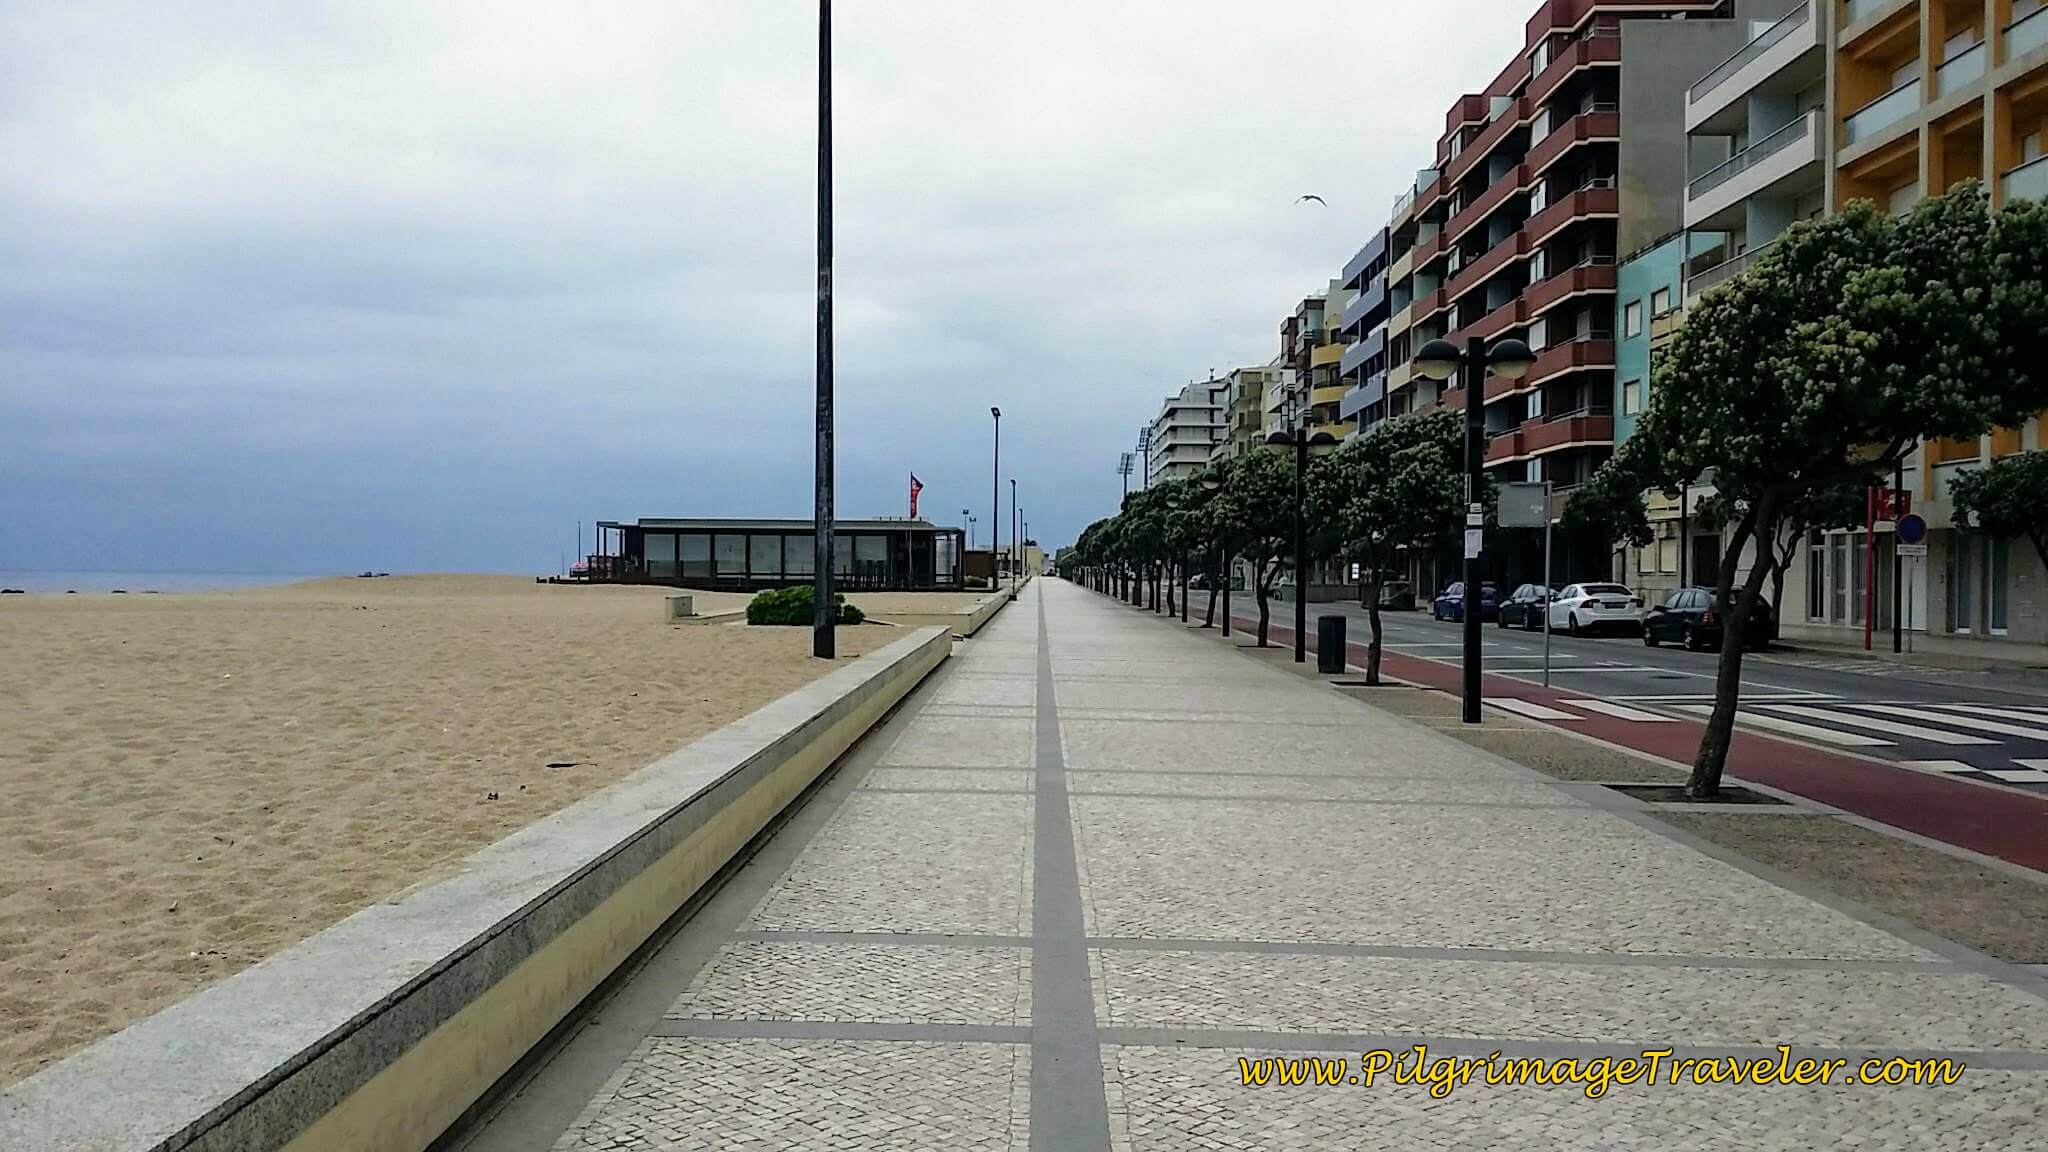 Promenade Along the Praia da Salgueira in Póvoa Varzim on day sixteen of the Camino Portugués on the Coastal Route